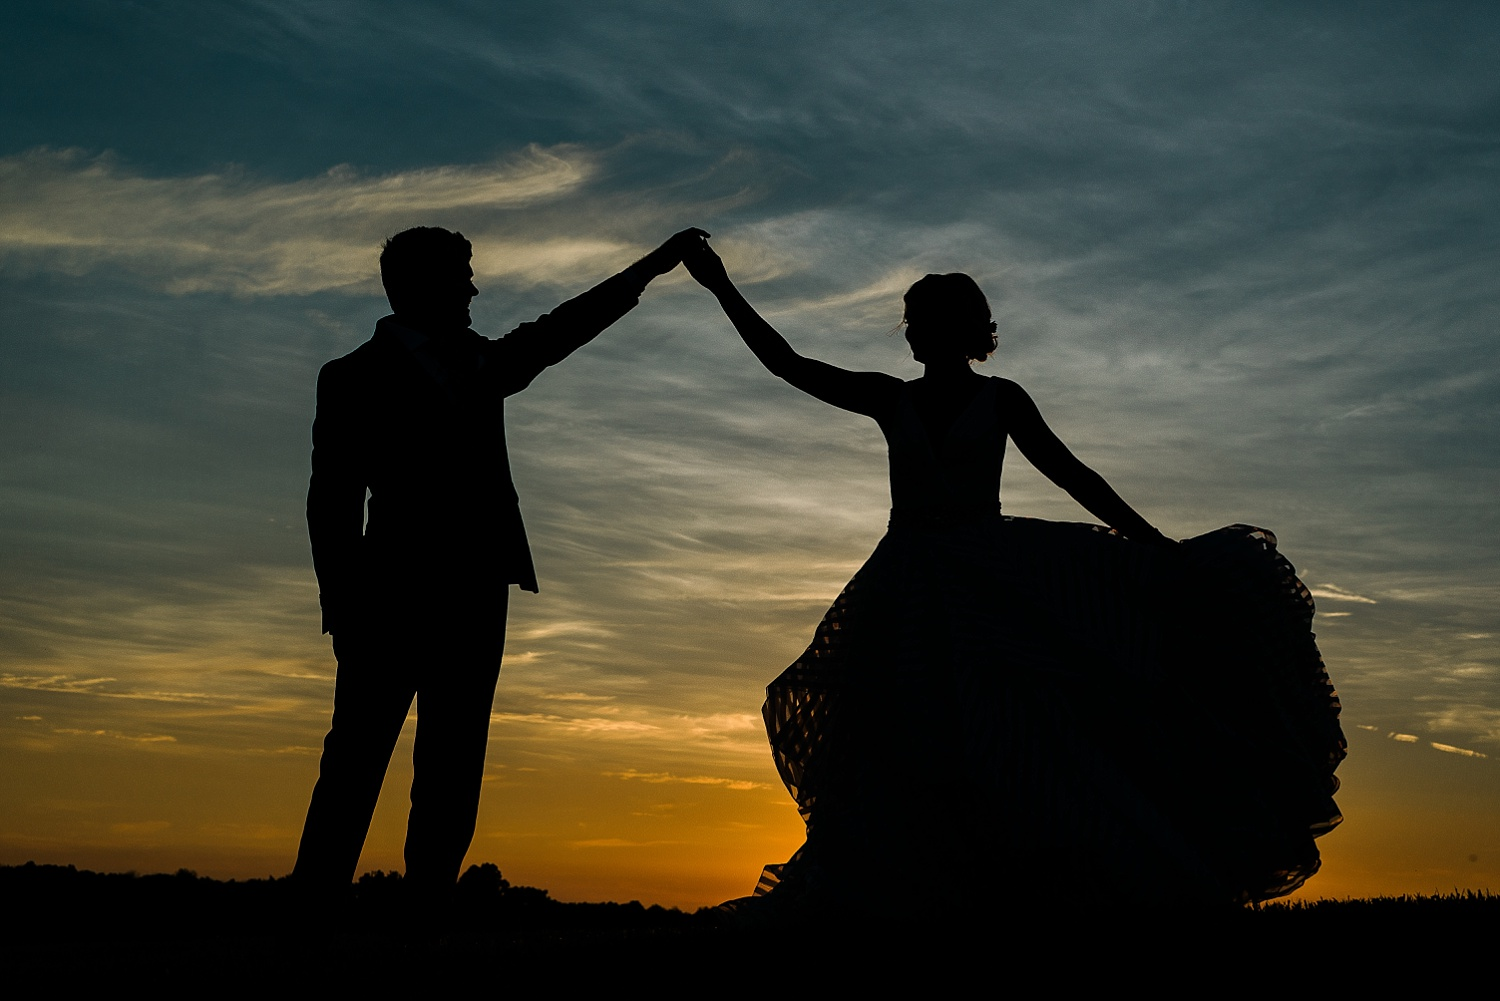 Love this silhouette!  They look like a Disney prince and princess!  <3